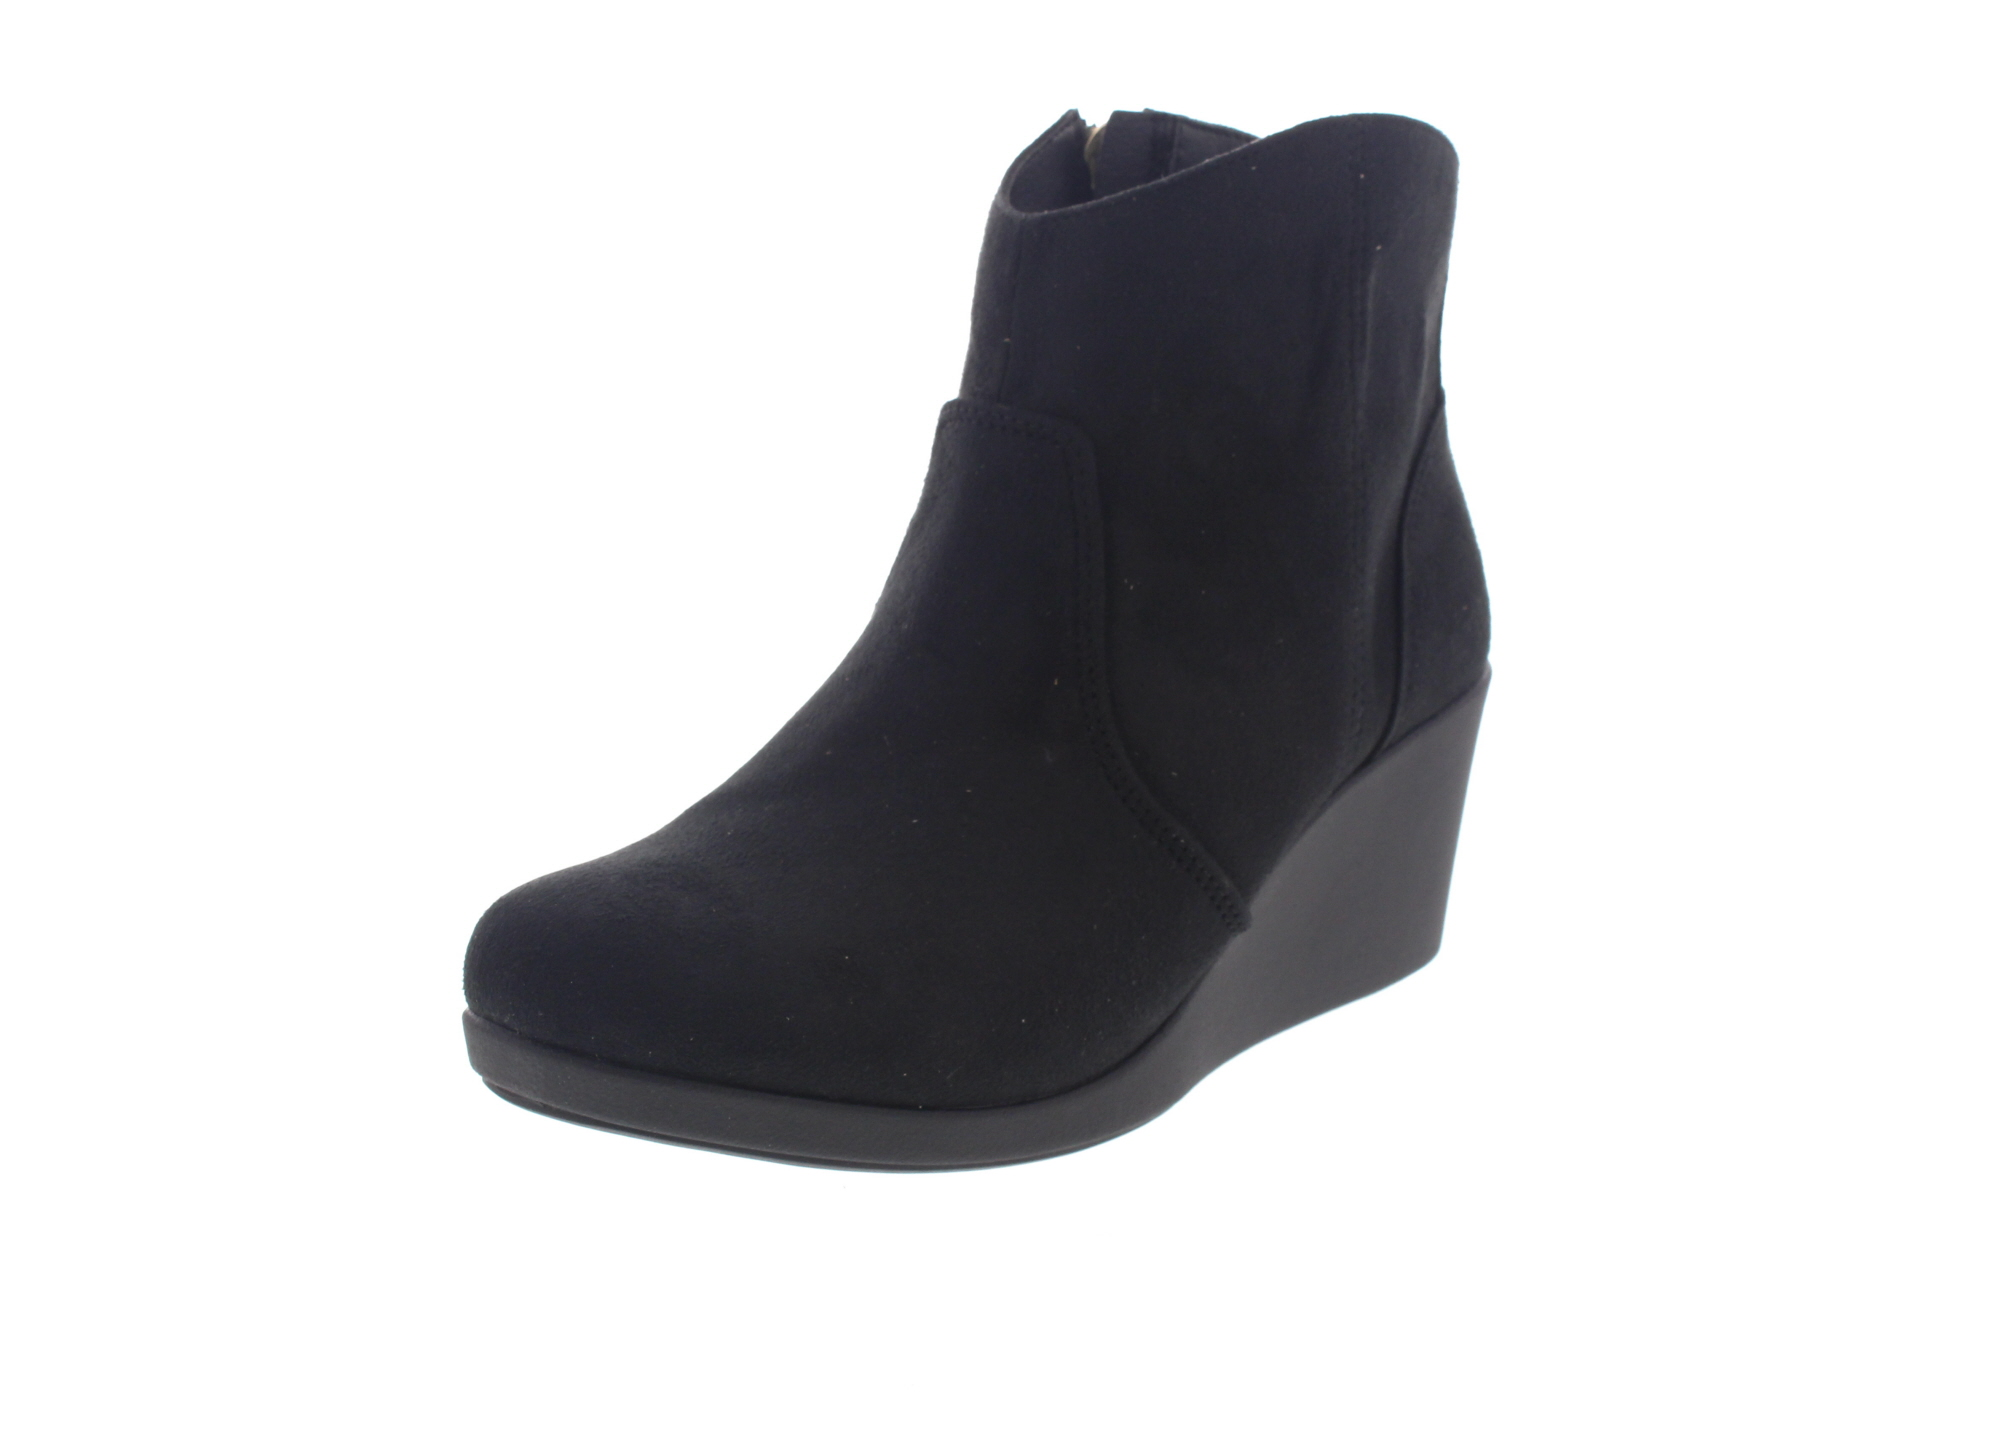 CROCS Stiefeletten Leigh Synth Suede Wedge Bootie black-0